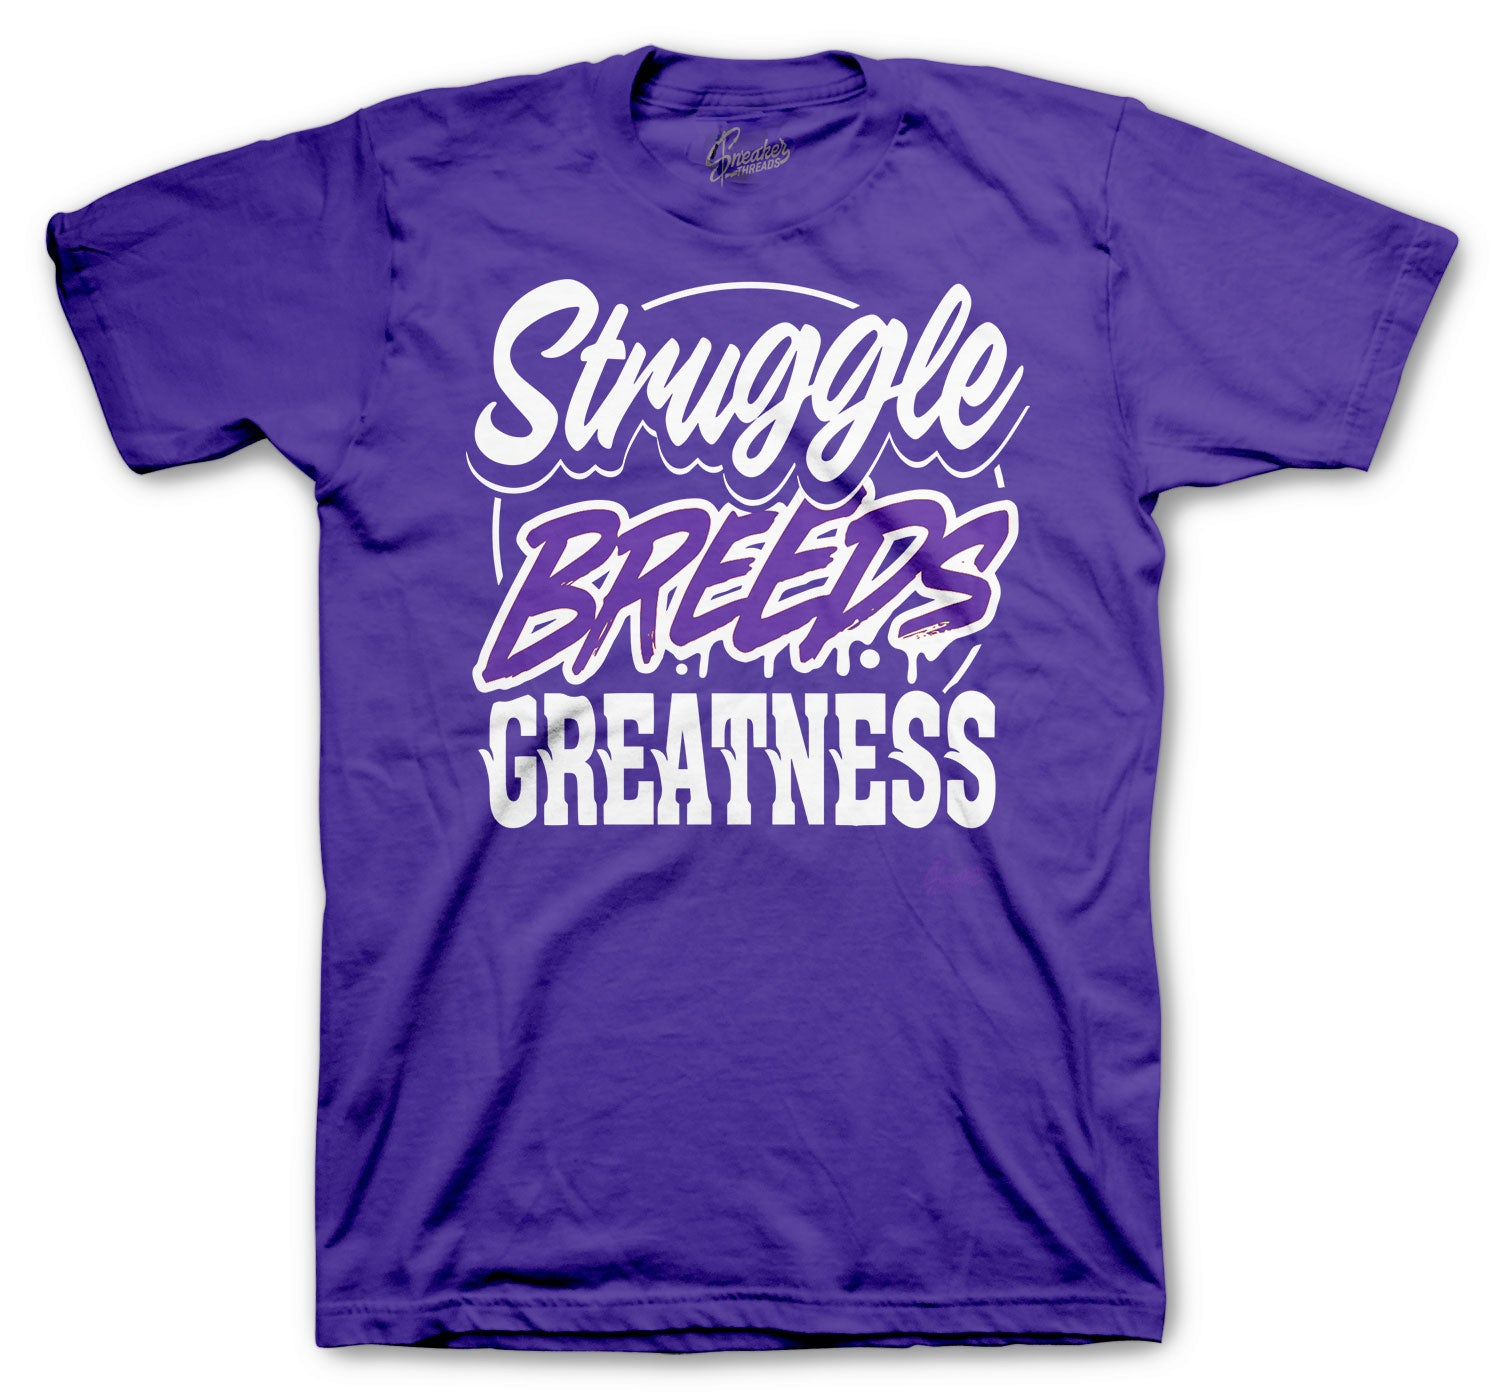 Purple Metallic Jordan 4 sneaker collection matching with boys tees